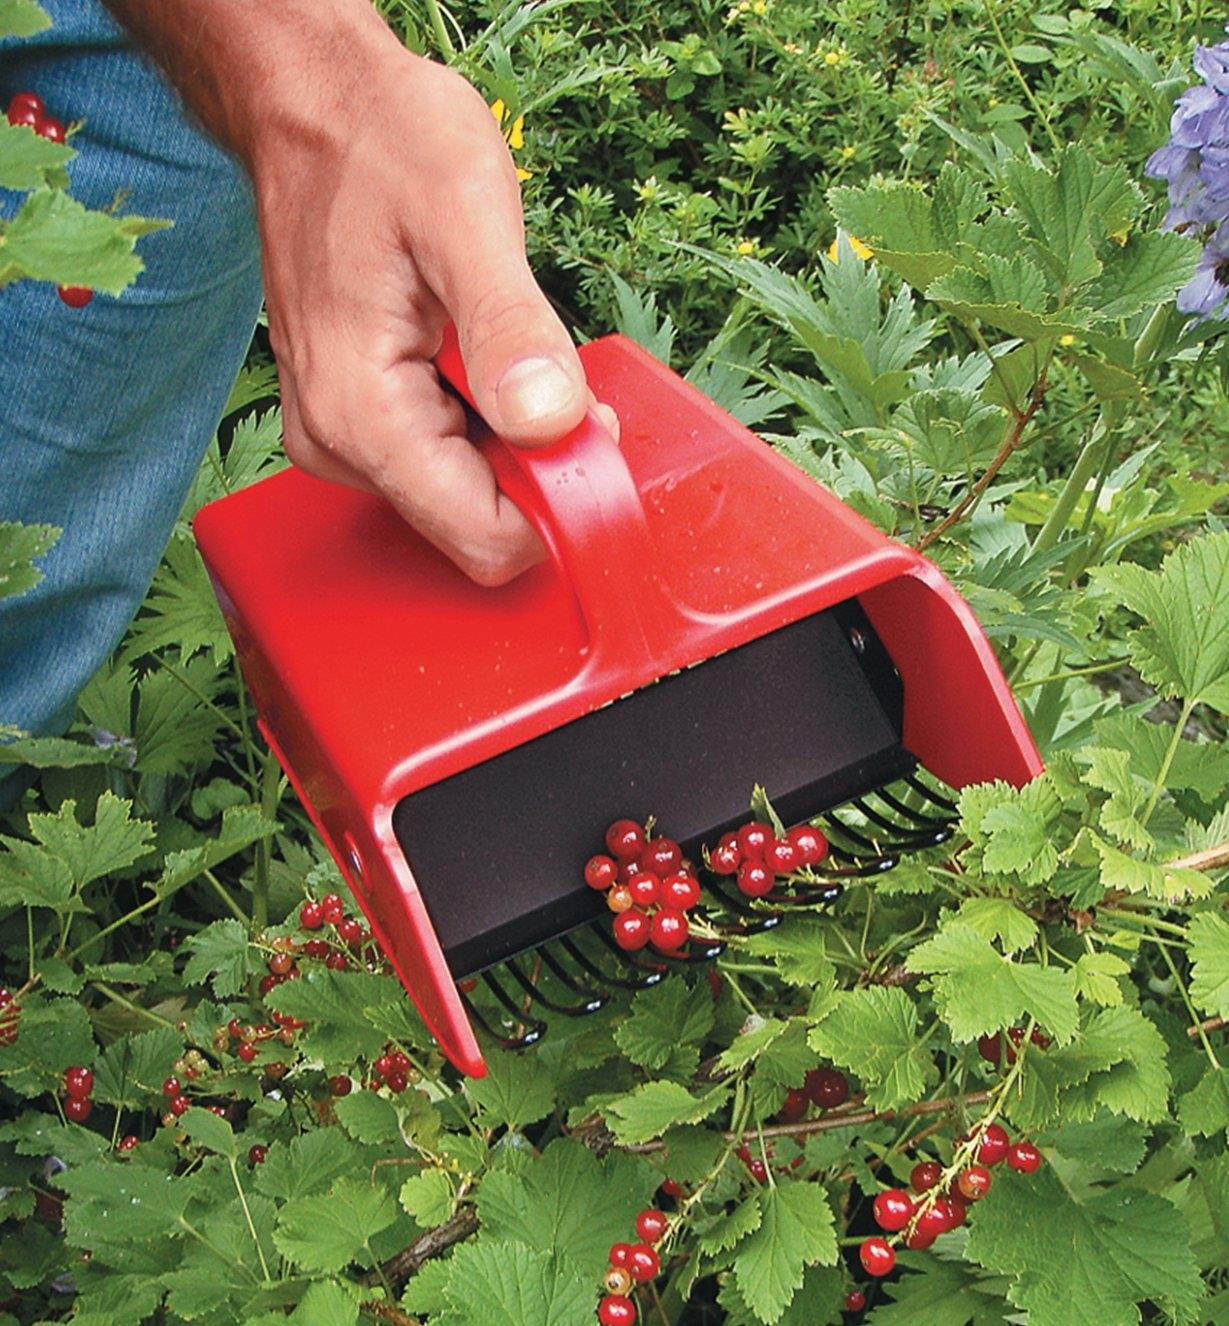 Berry Scoop being used to collect redcurrants